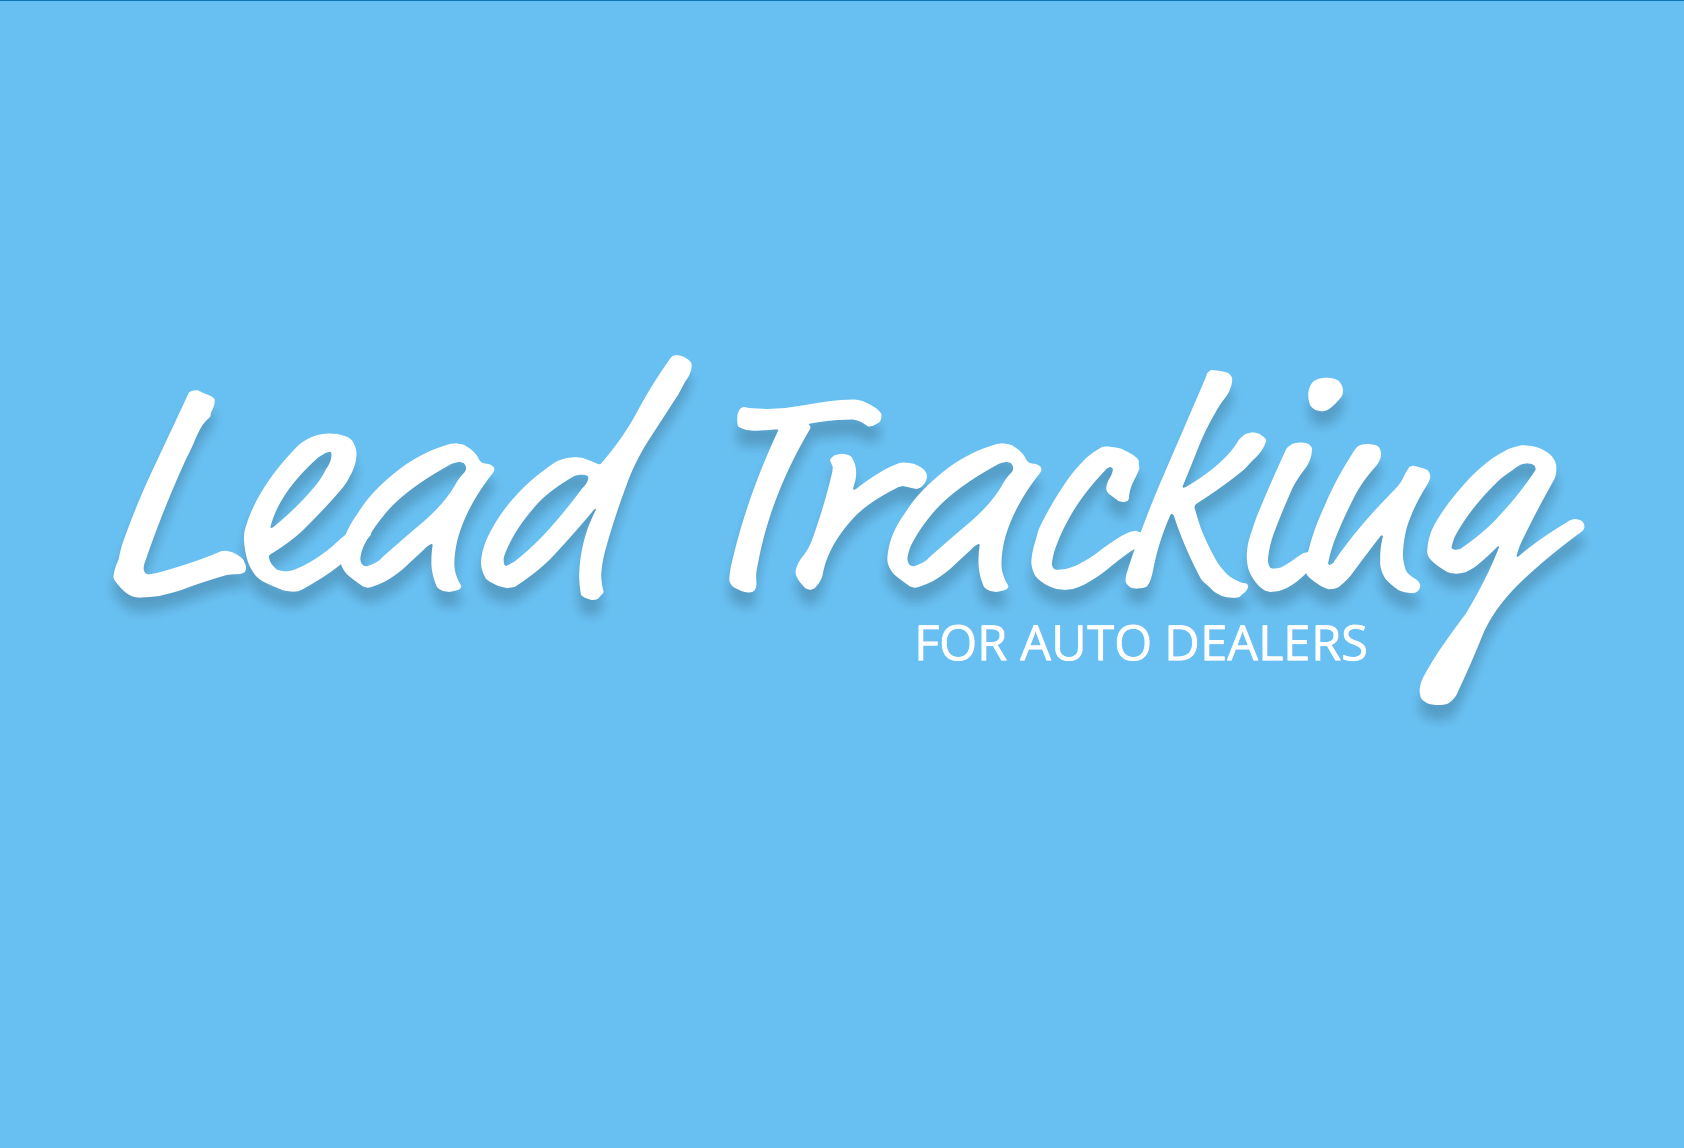 Lead_Tracking_for_Auto_Dealers